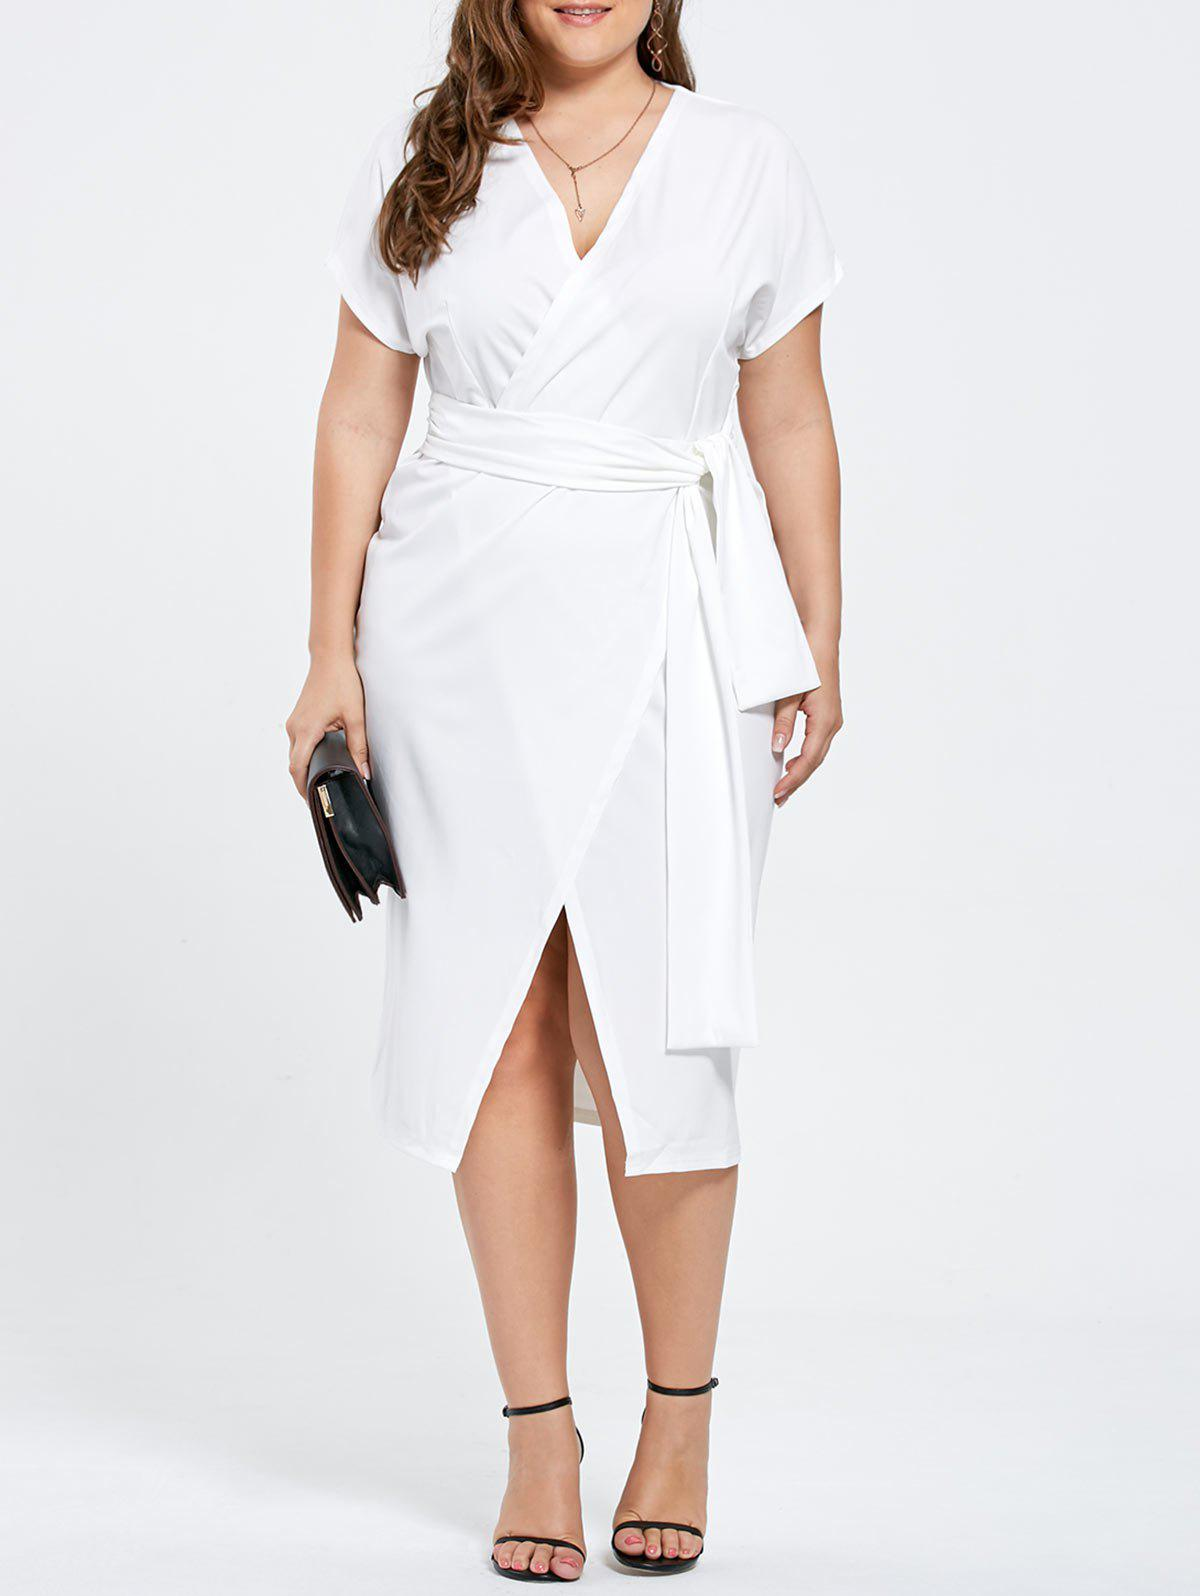 Long Midi Plus Size Short Sleeve Wrap Formal DressWOMEN<br><br>Size: 3XL; Color: WHITE; Style: Work; Material: Polyester; Silhouette: Sheath; Dresses Length: Mid-Calf; Neckline: V-Neck; Sleeve Length: Short Sleeves; Pattern Type: Solid; With Belt: No; Season: Fall,Spring; Weight: 0.4700kg; Package Contents: 1 x Dress;